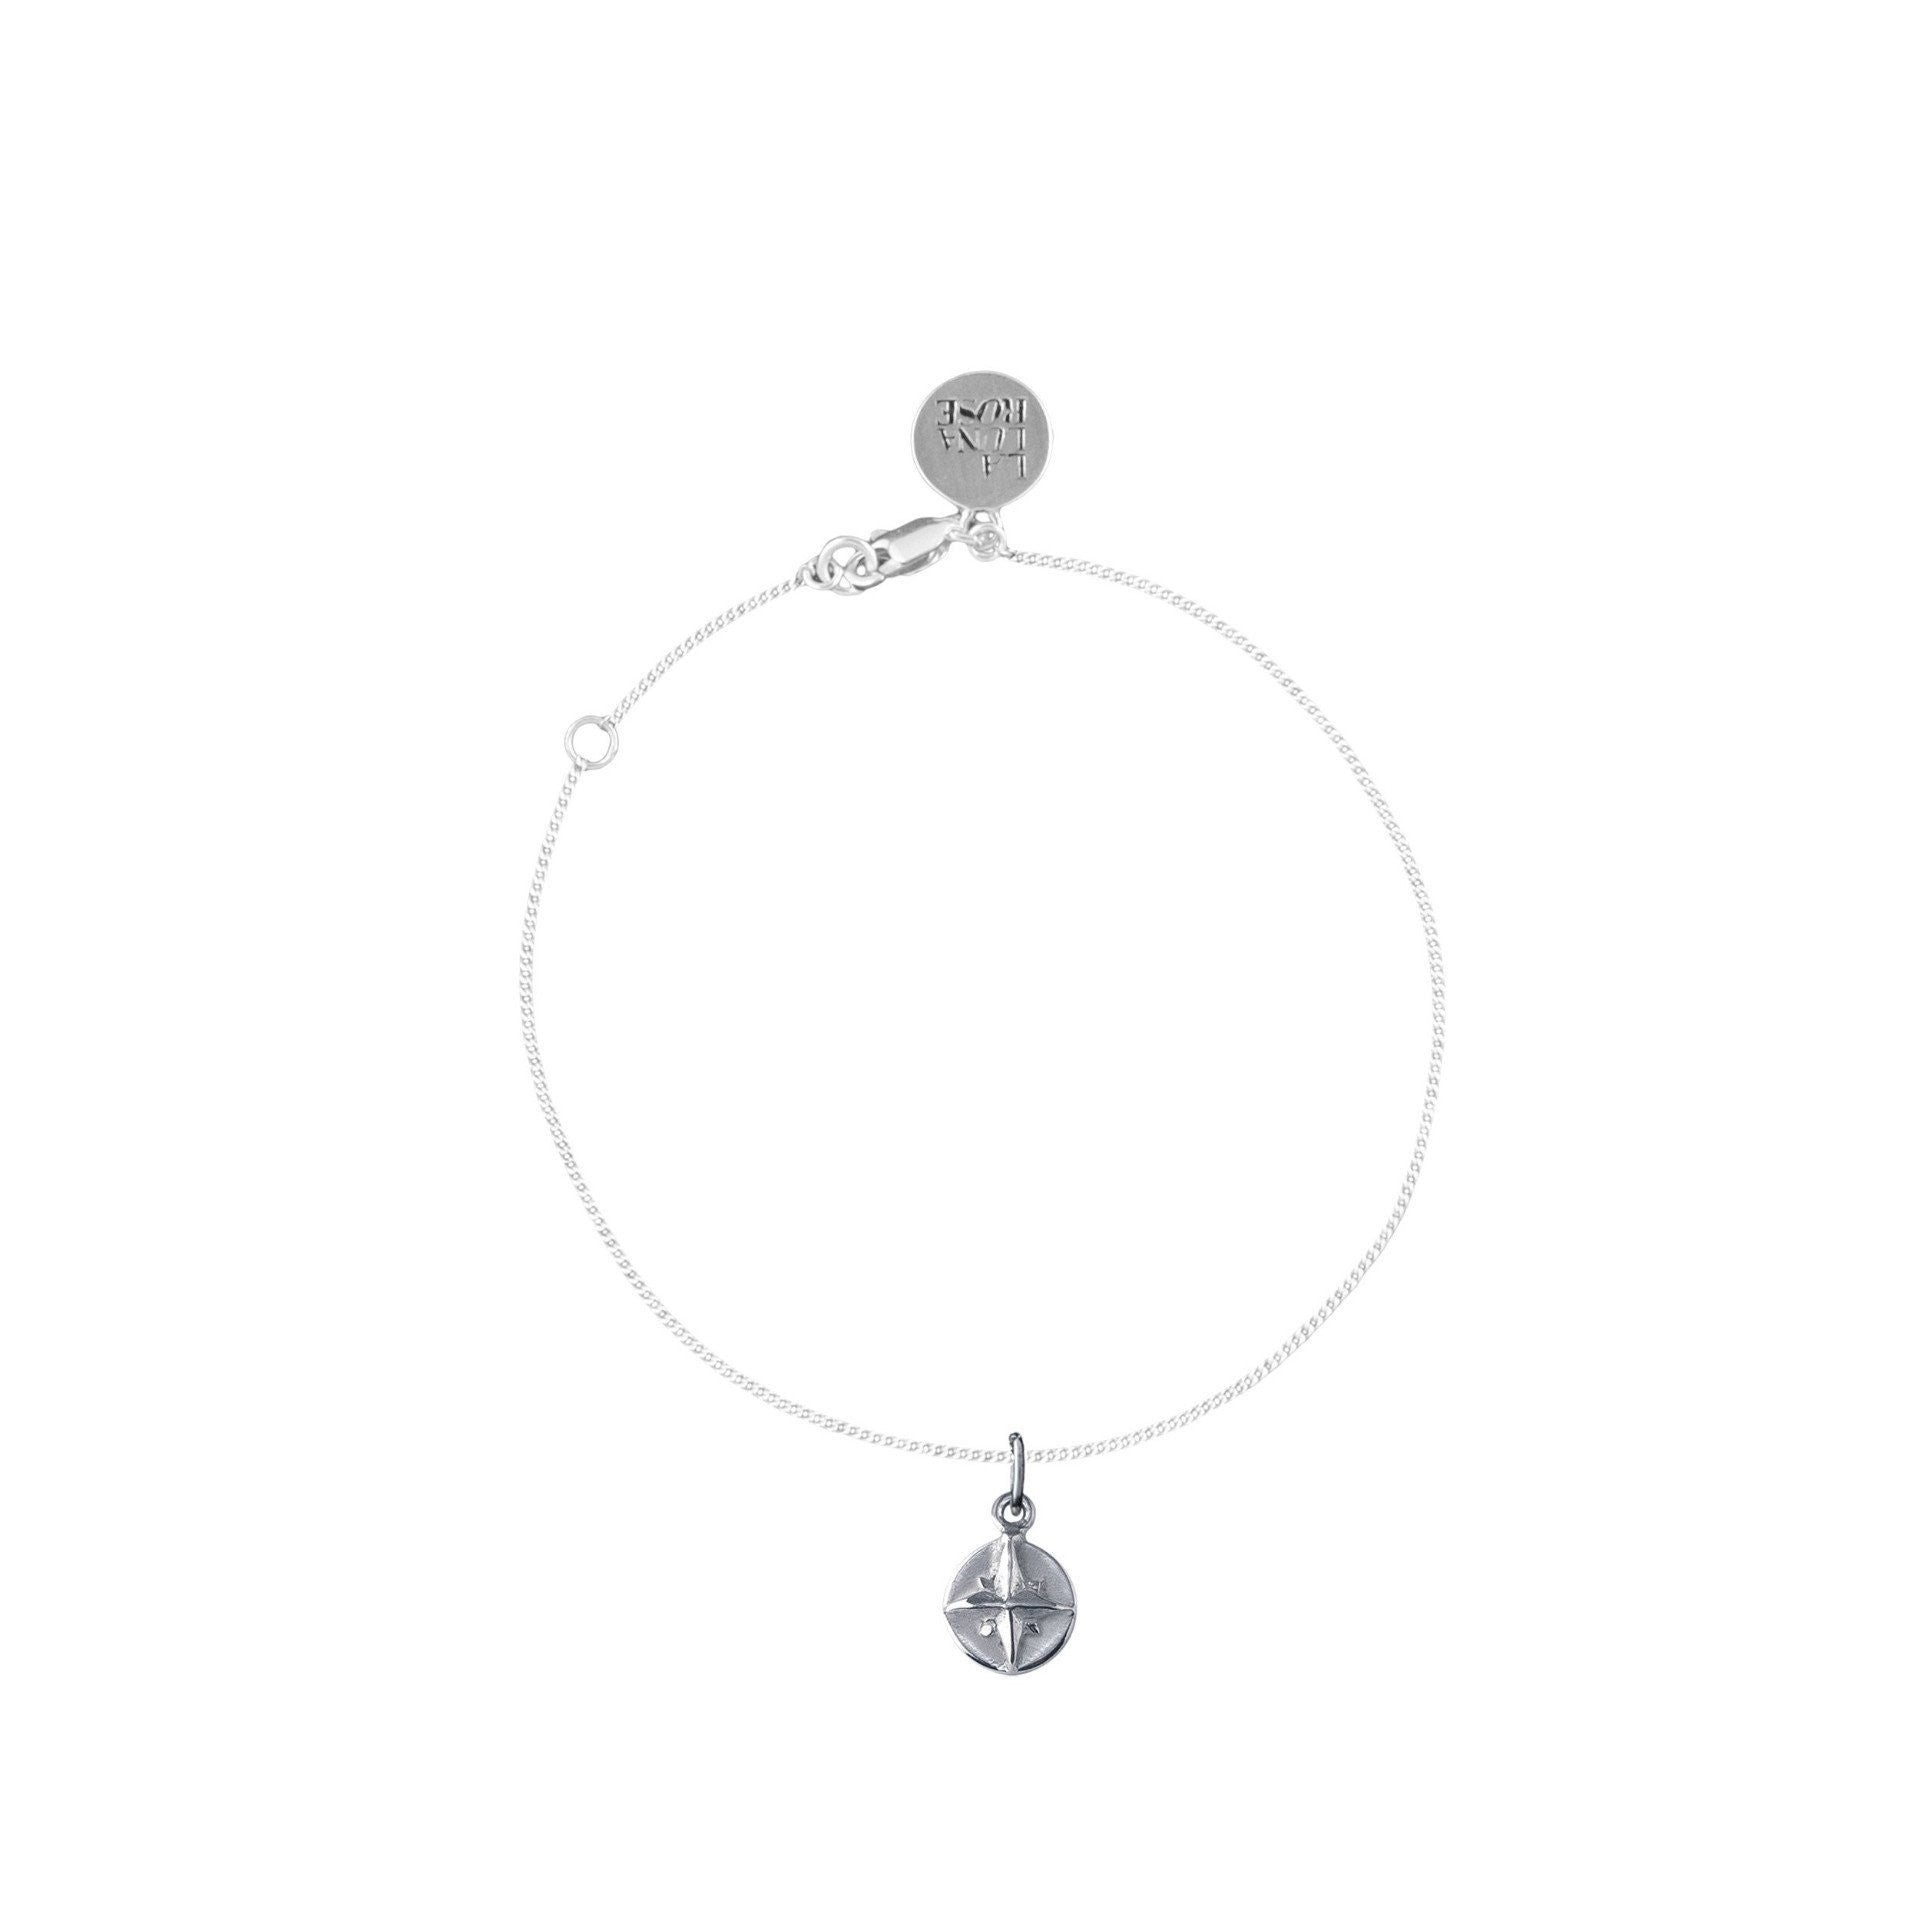 Born to Roam Compass Chain Bracelet - Silver